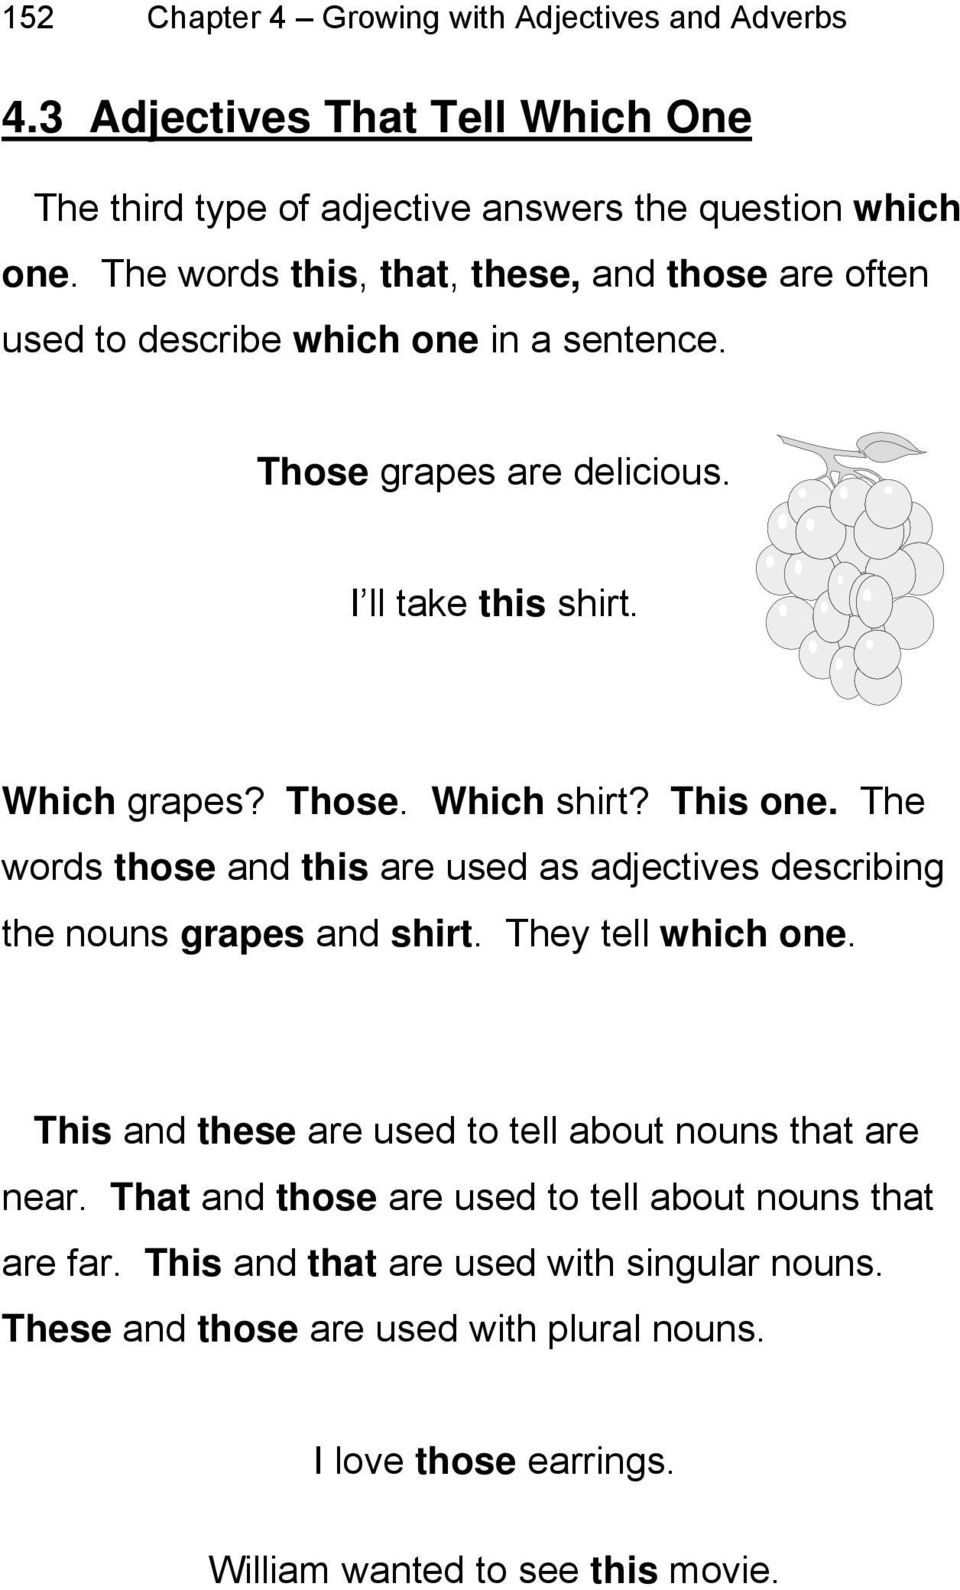 This one. The words those and this are used as adjectives describing the nouns grapes and shirt. They tell which one.